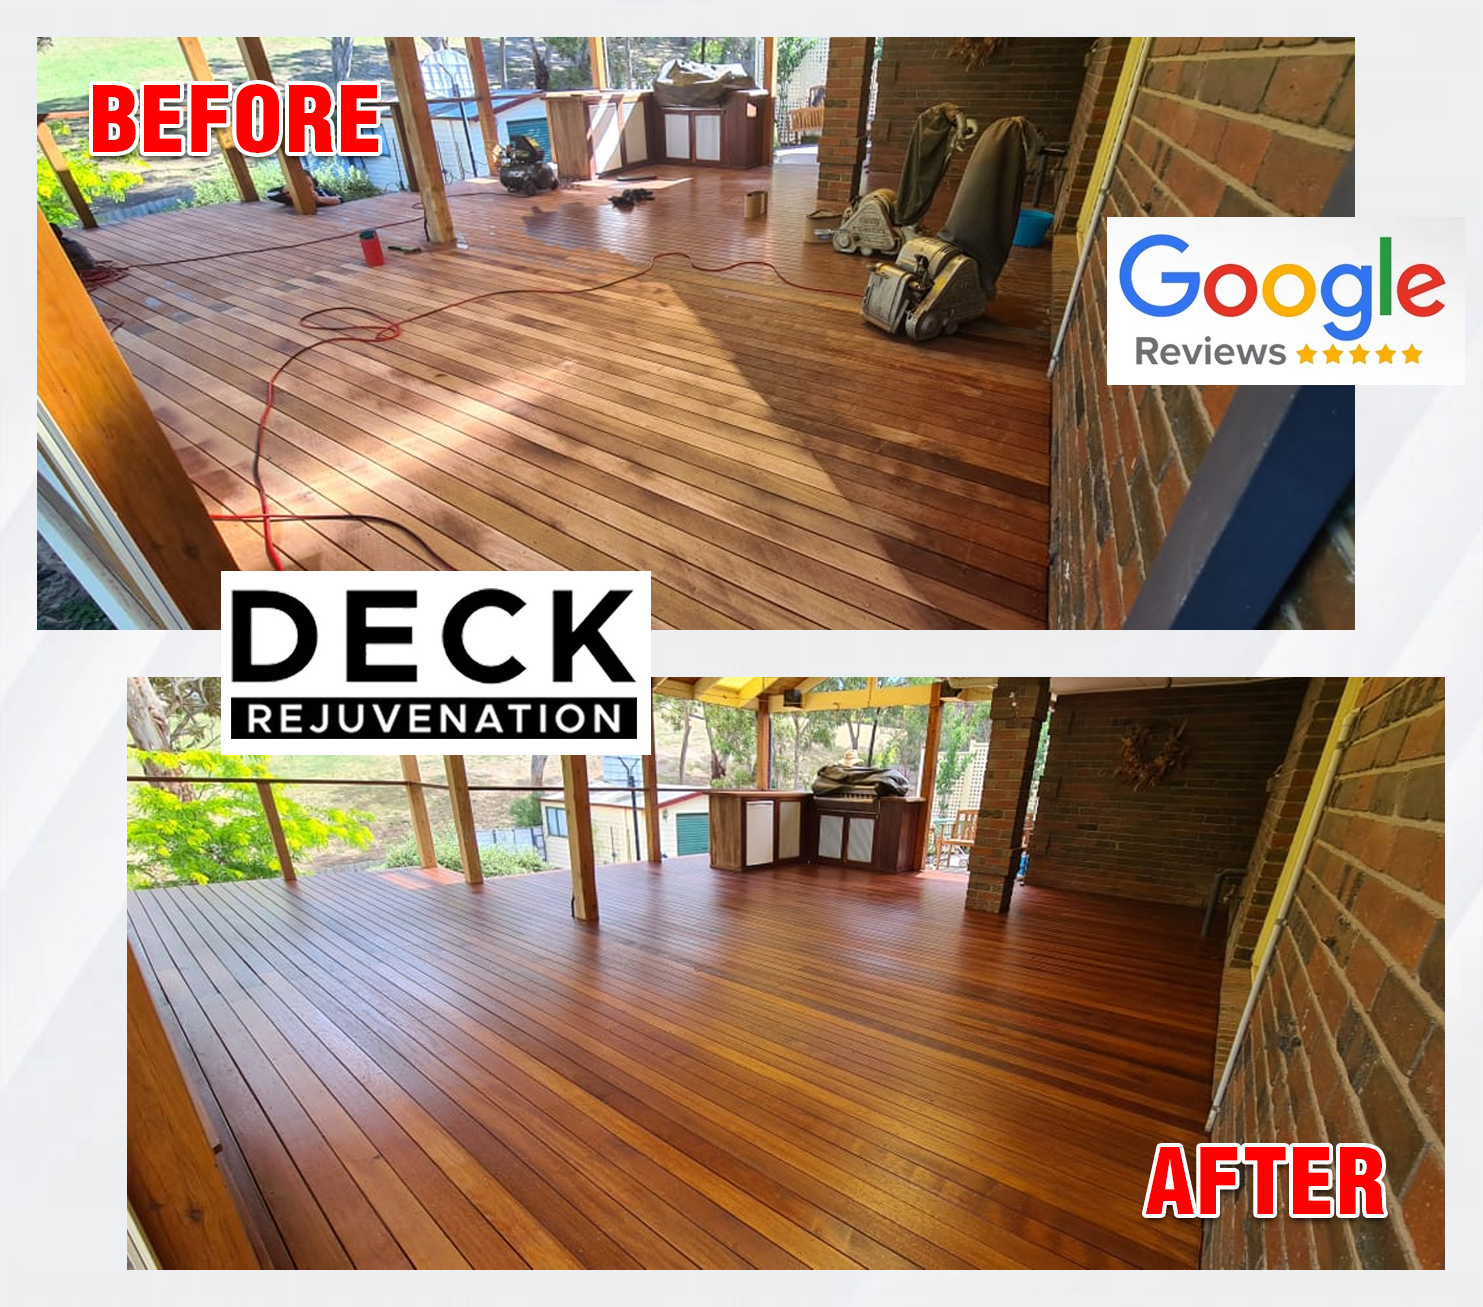 Deck Rejuvenation